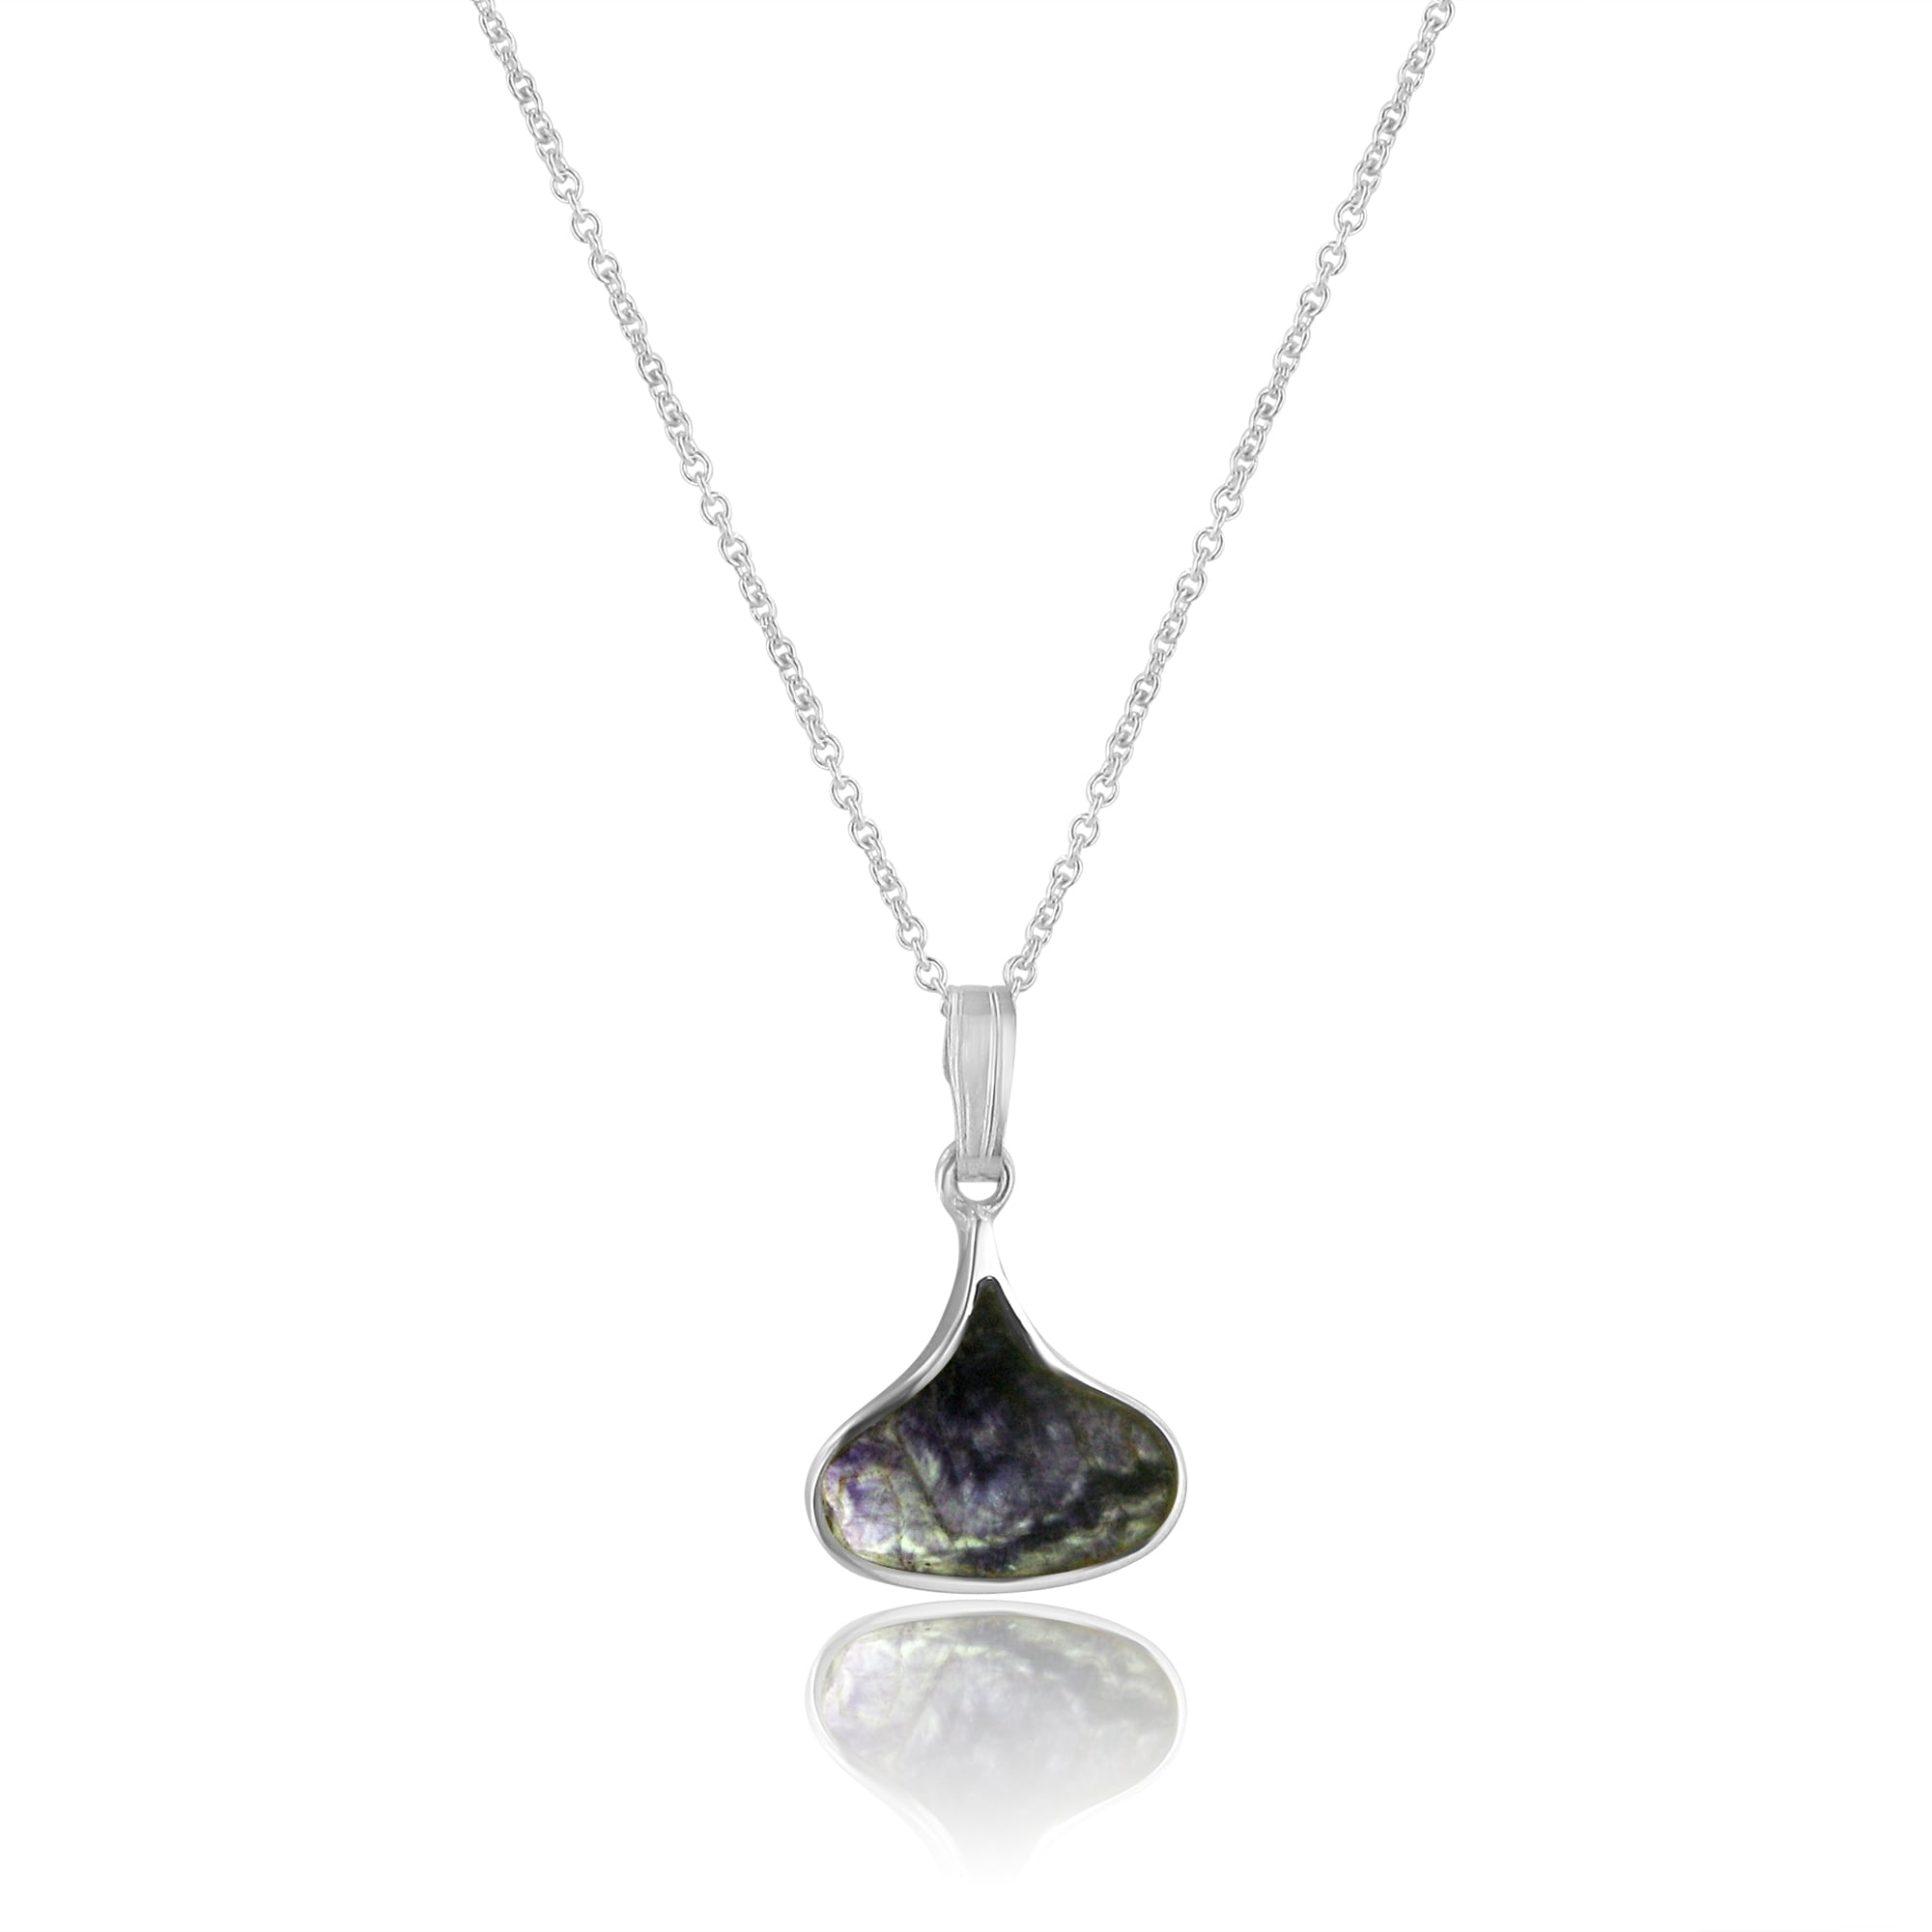 Blue john small silver short wide teardrop blue john pendant and small silver short wide teardrop blue john pendant and chain ps1885 cs3056 aloadofball Image collections